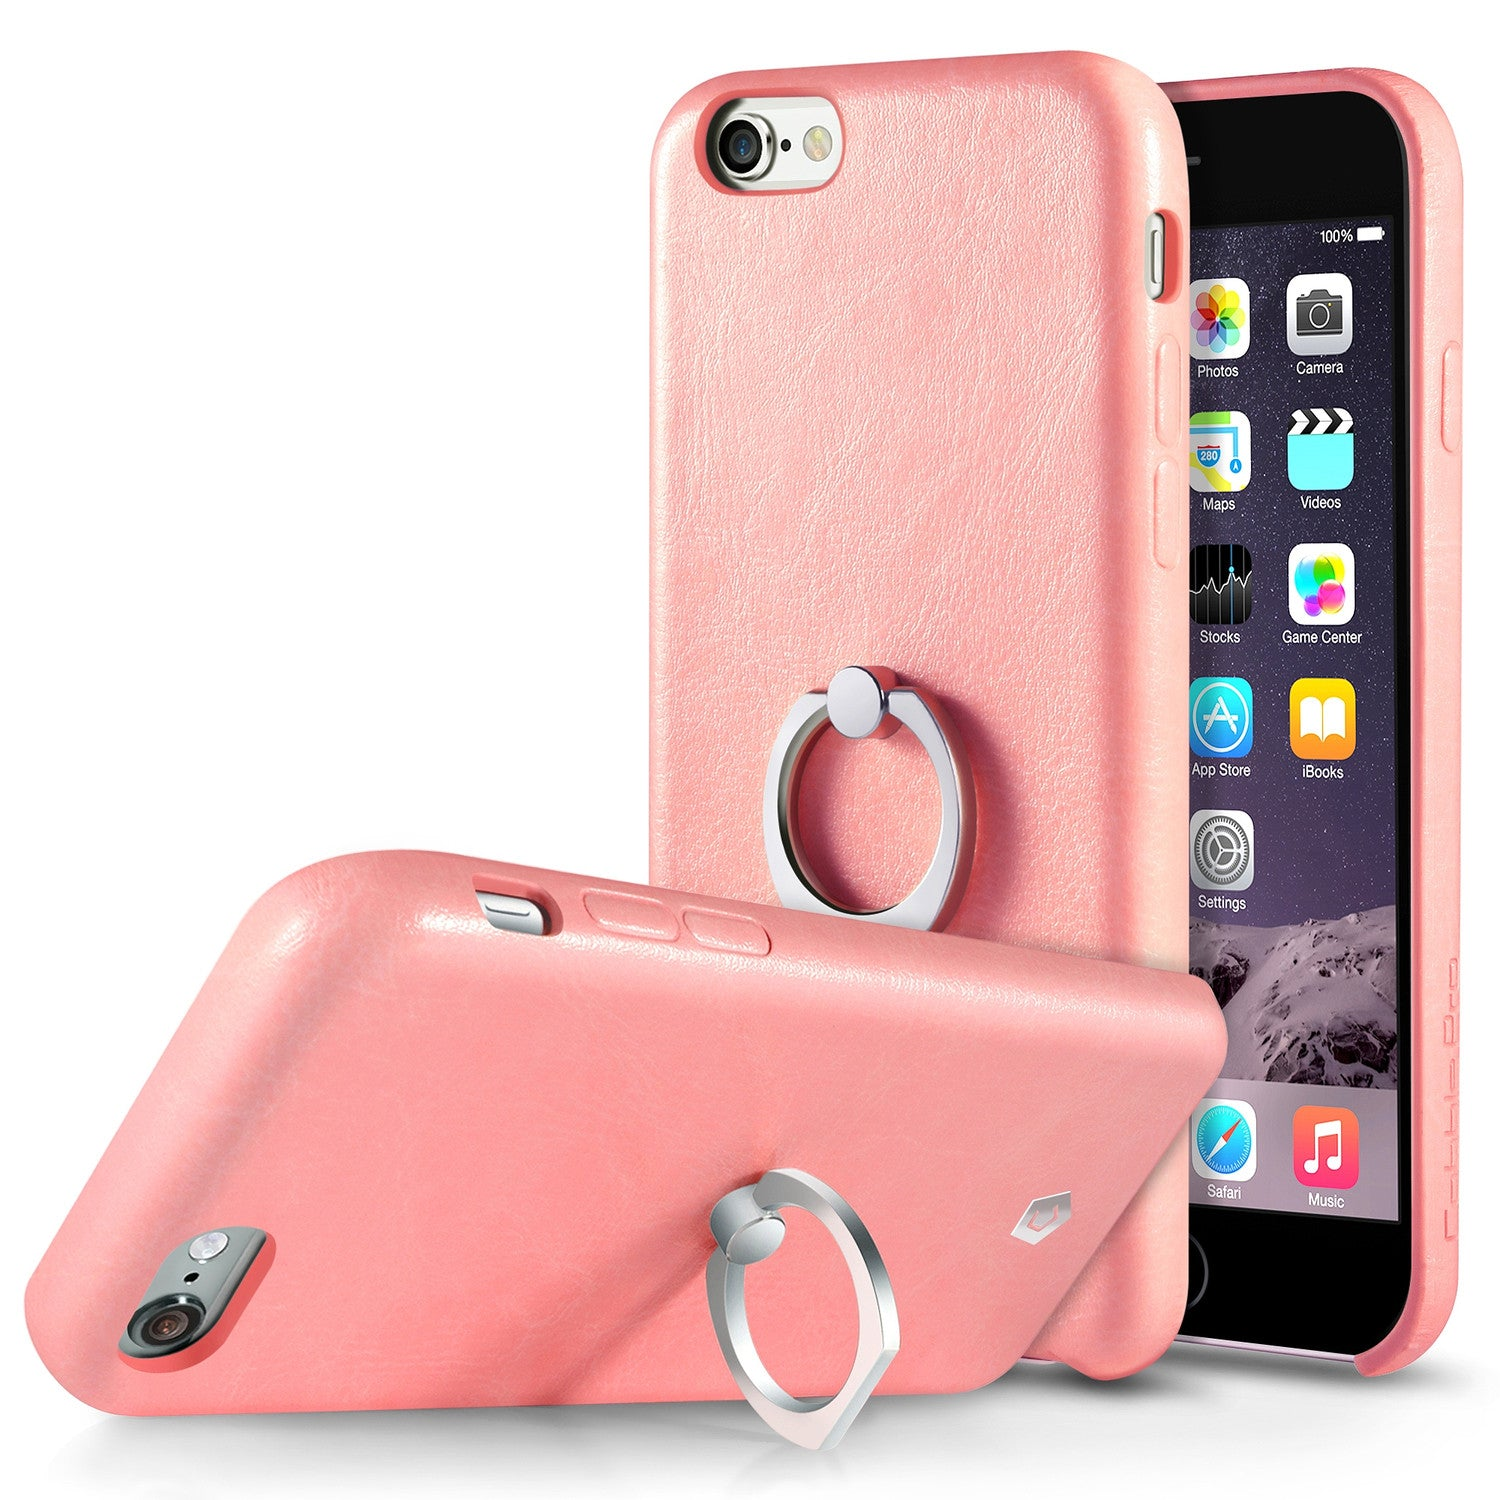 check out e769a 5fefd Pink Leather Textured Back Case with Ring Stand for iPhone 6 Plus / 6s Plus